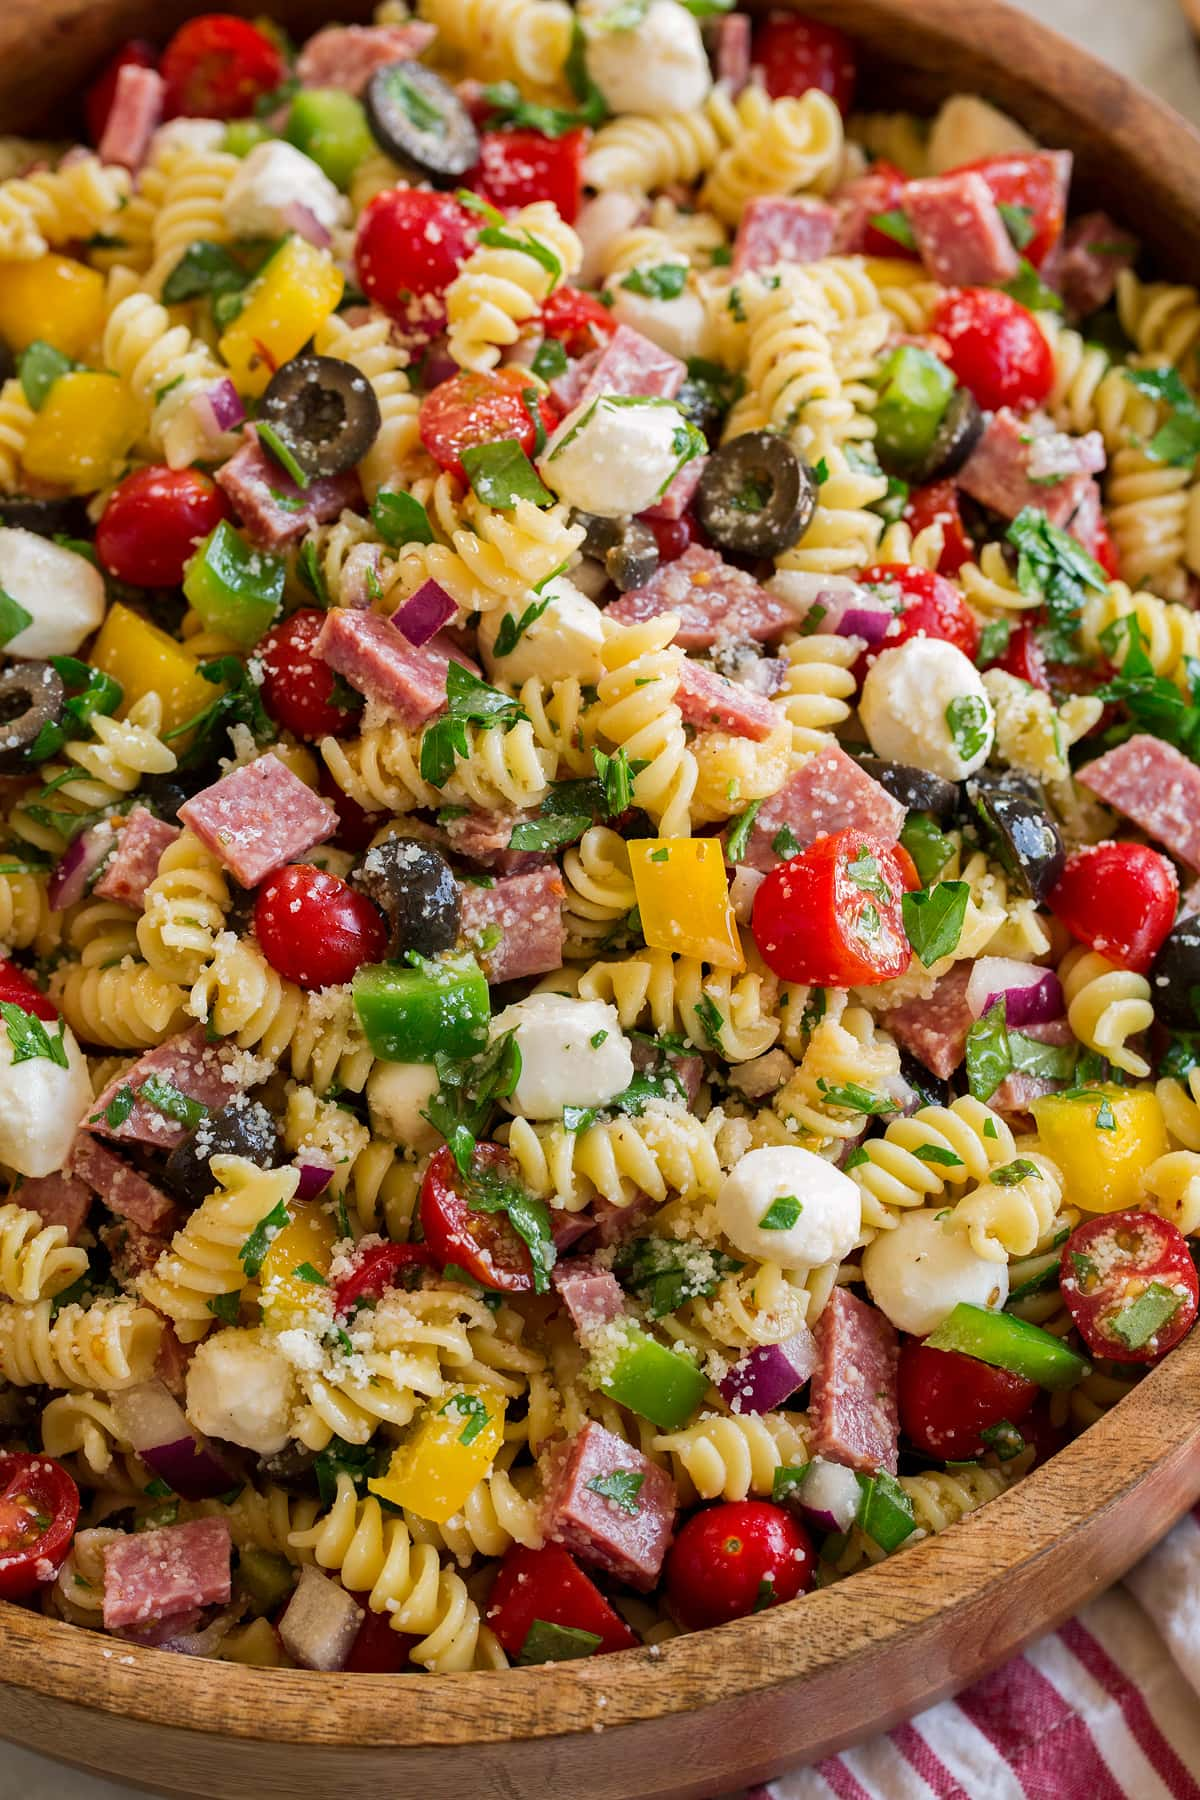 Close up photo of Italian pasta salad showing all the textures and fresh ingredients of the pasta salad.